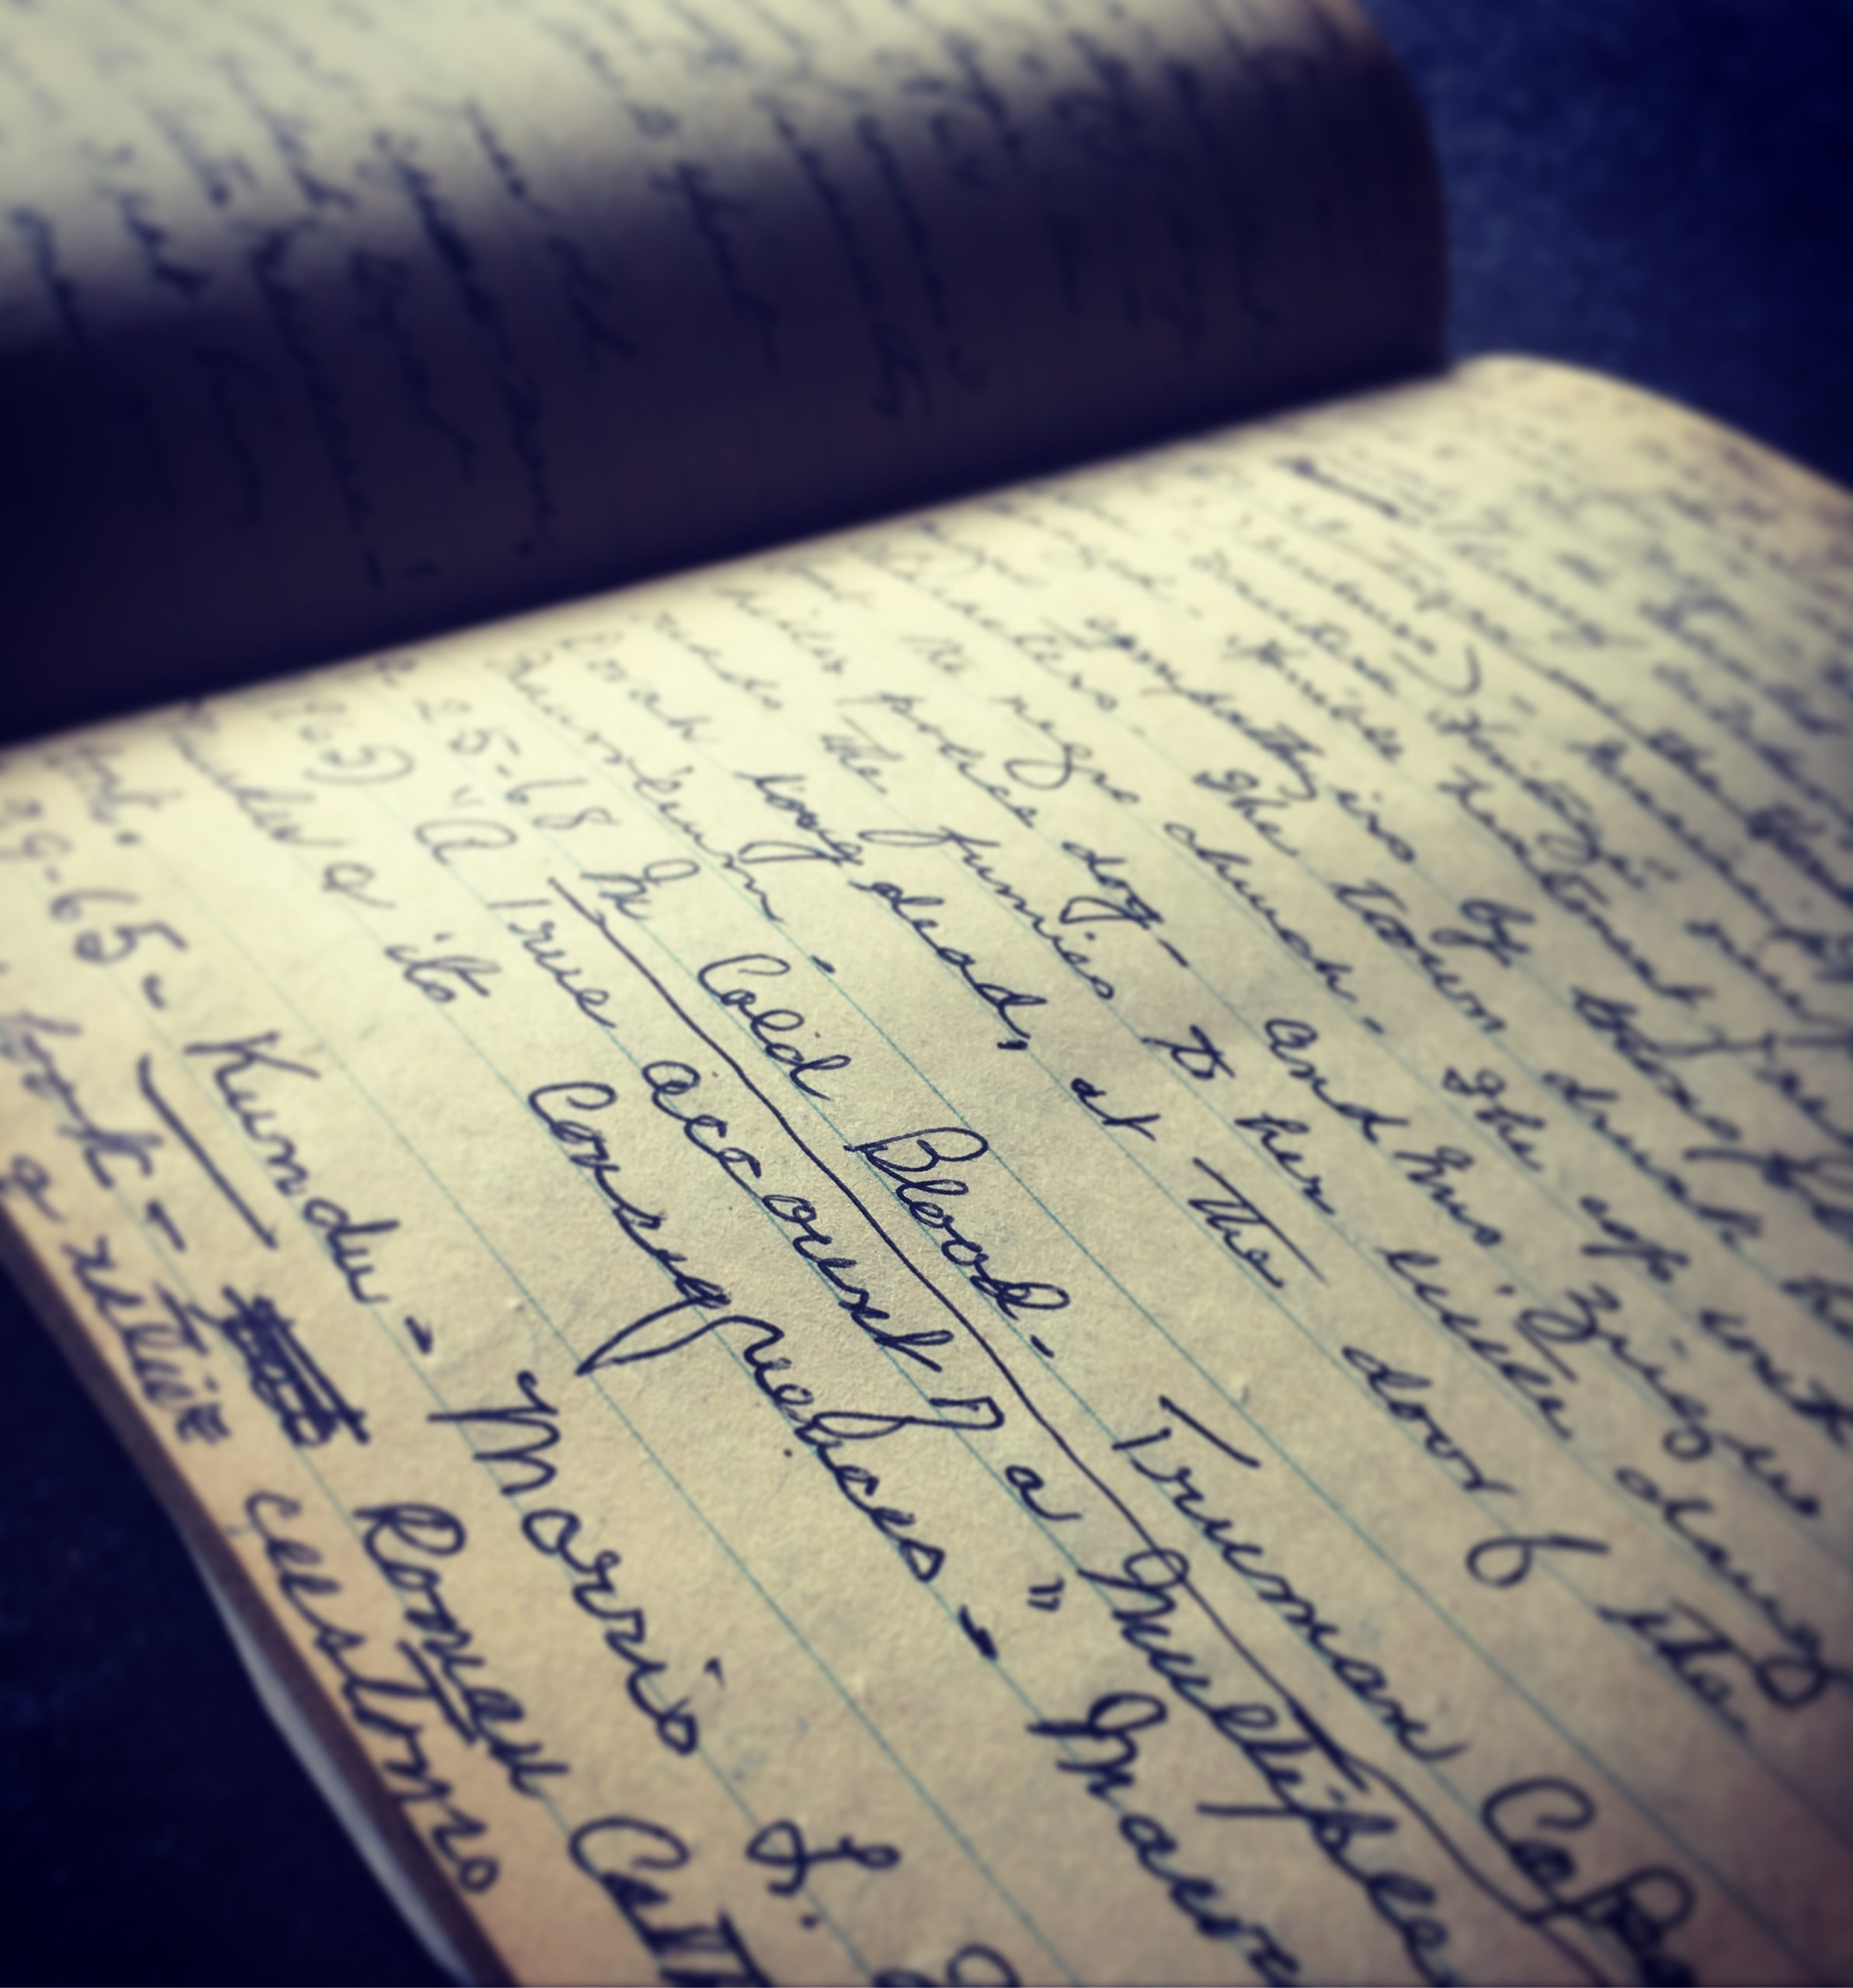 An Unearthed Journal Joins Social Media